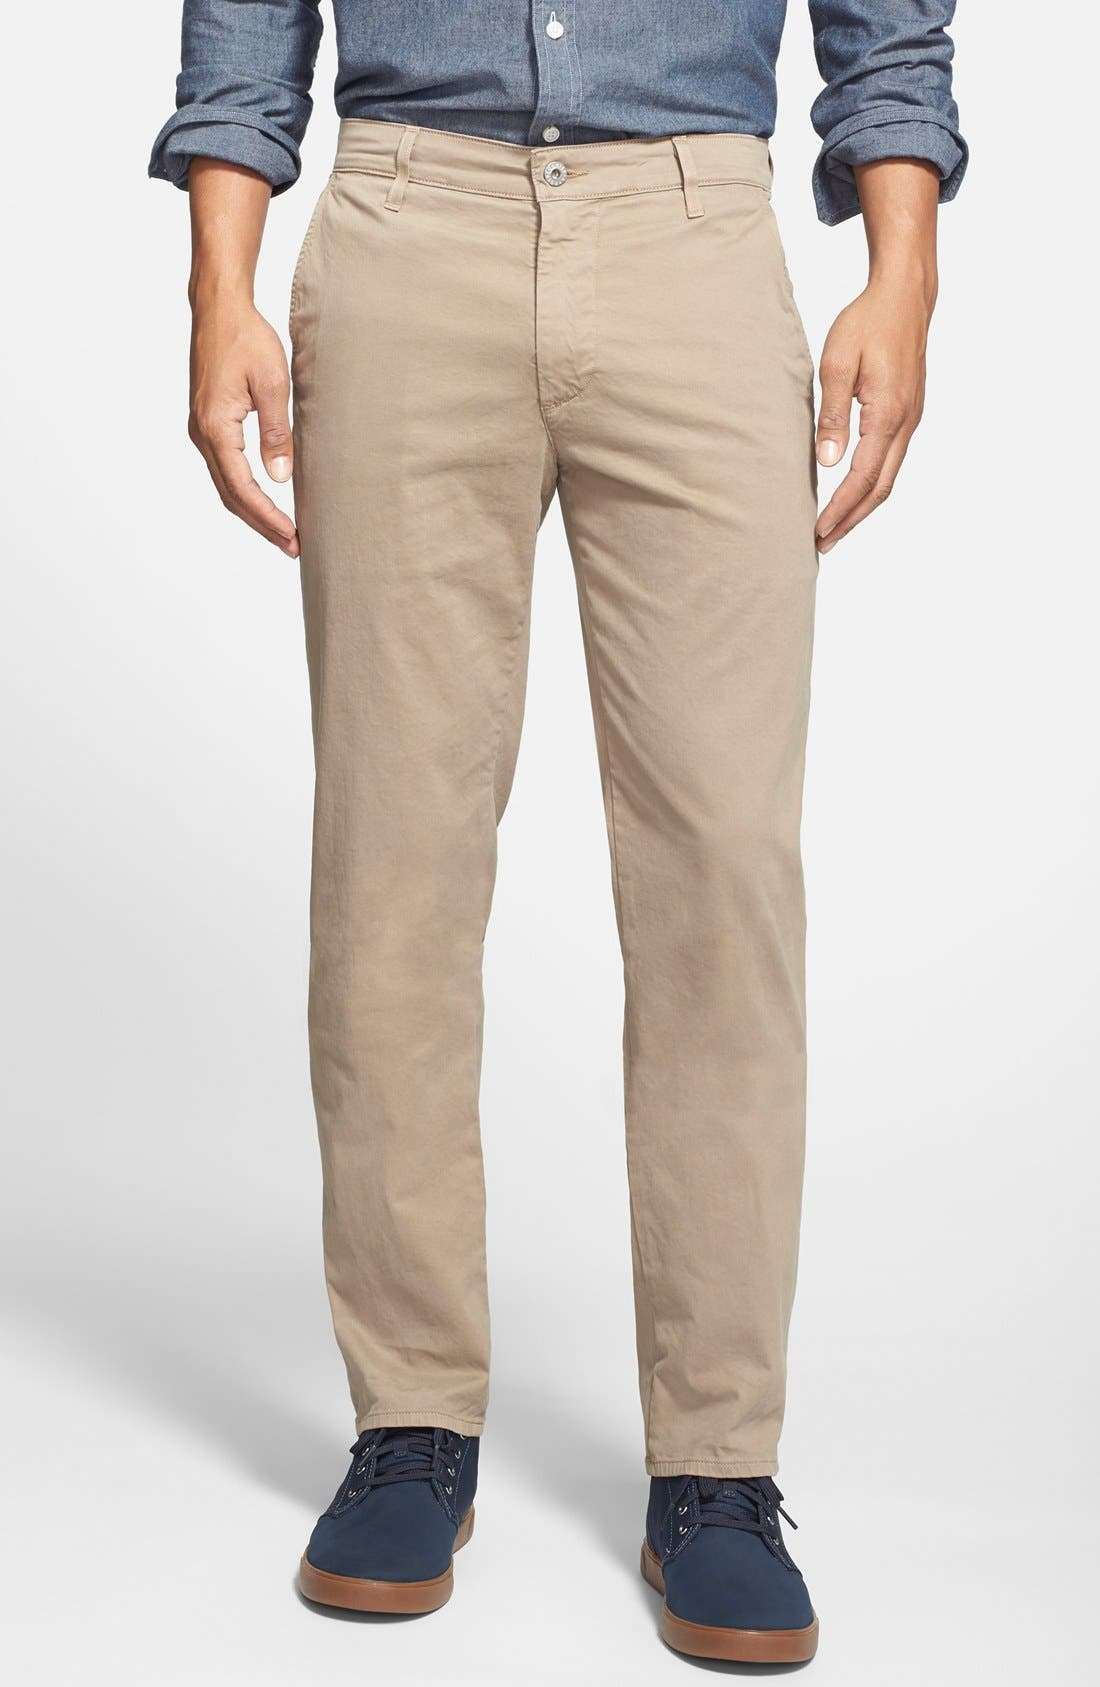 'The Lux' Tailored Straight Leg Chinos,                             Main thumbnail 1, color,                             Wheat